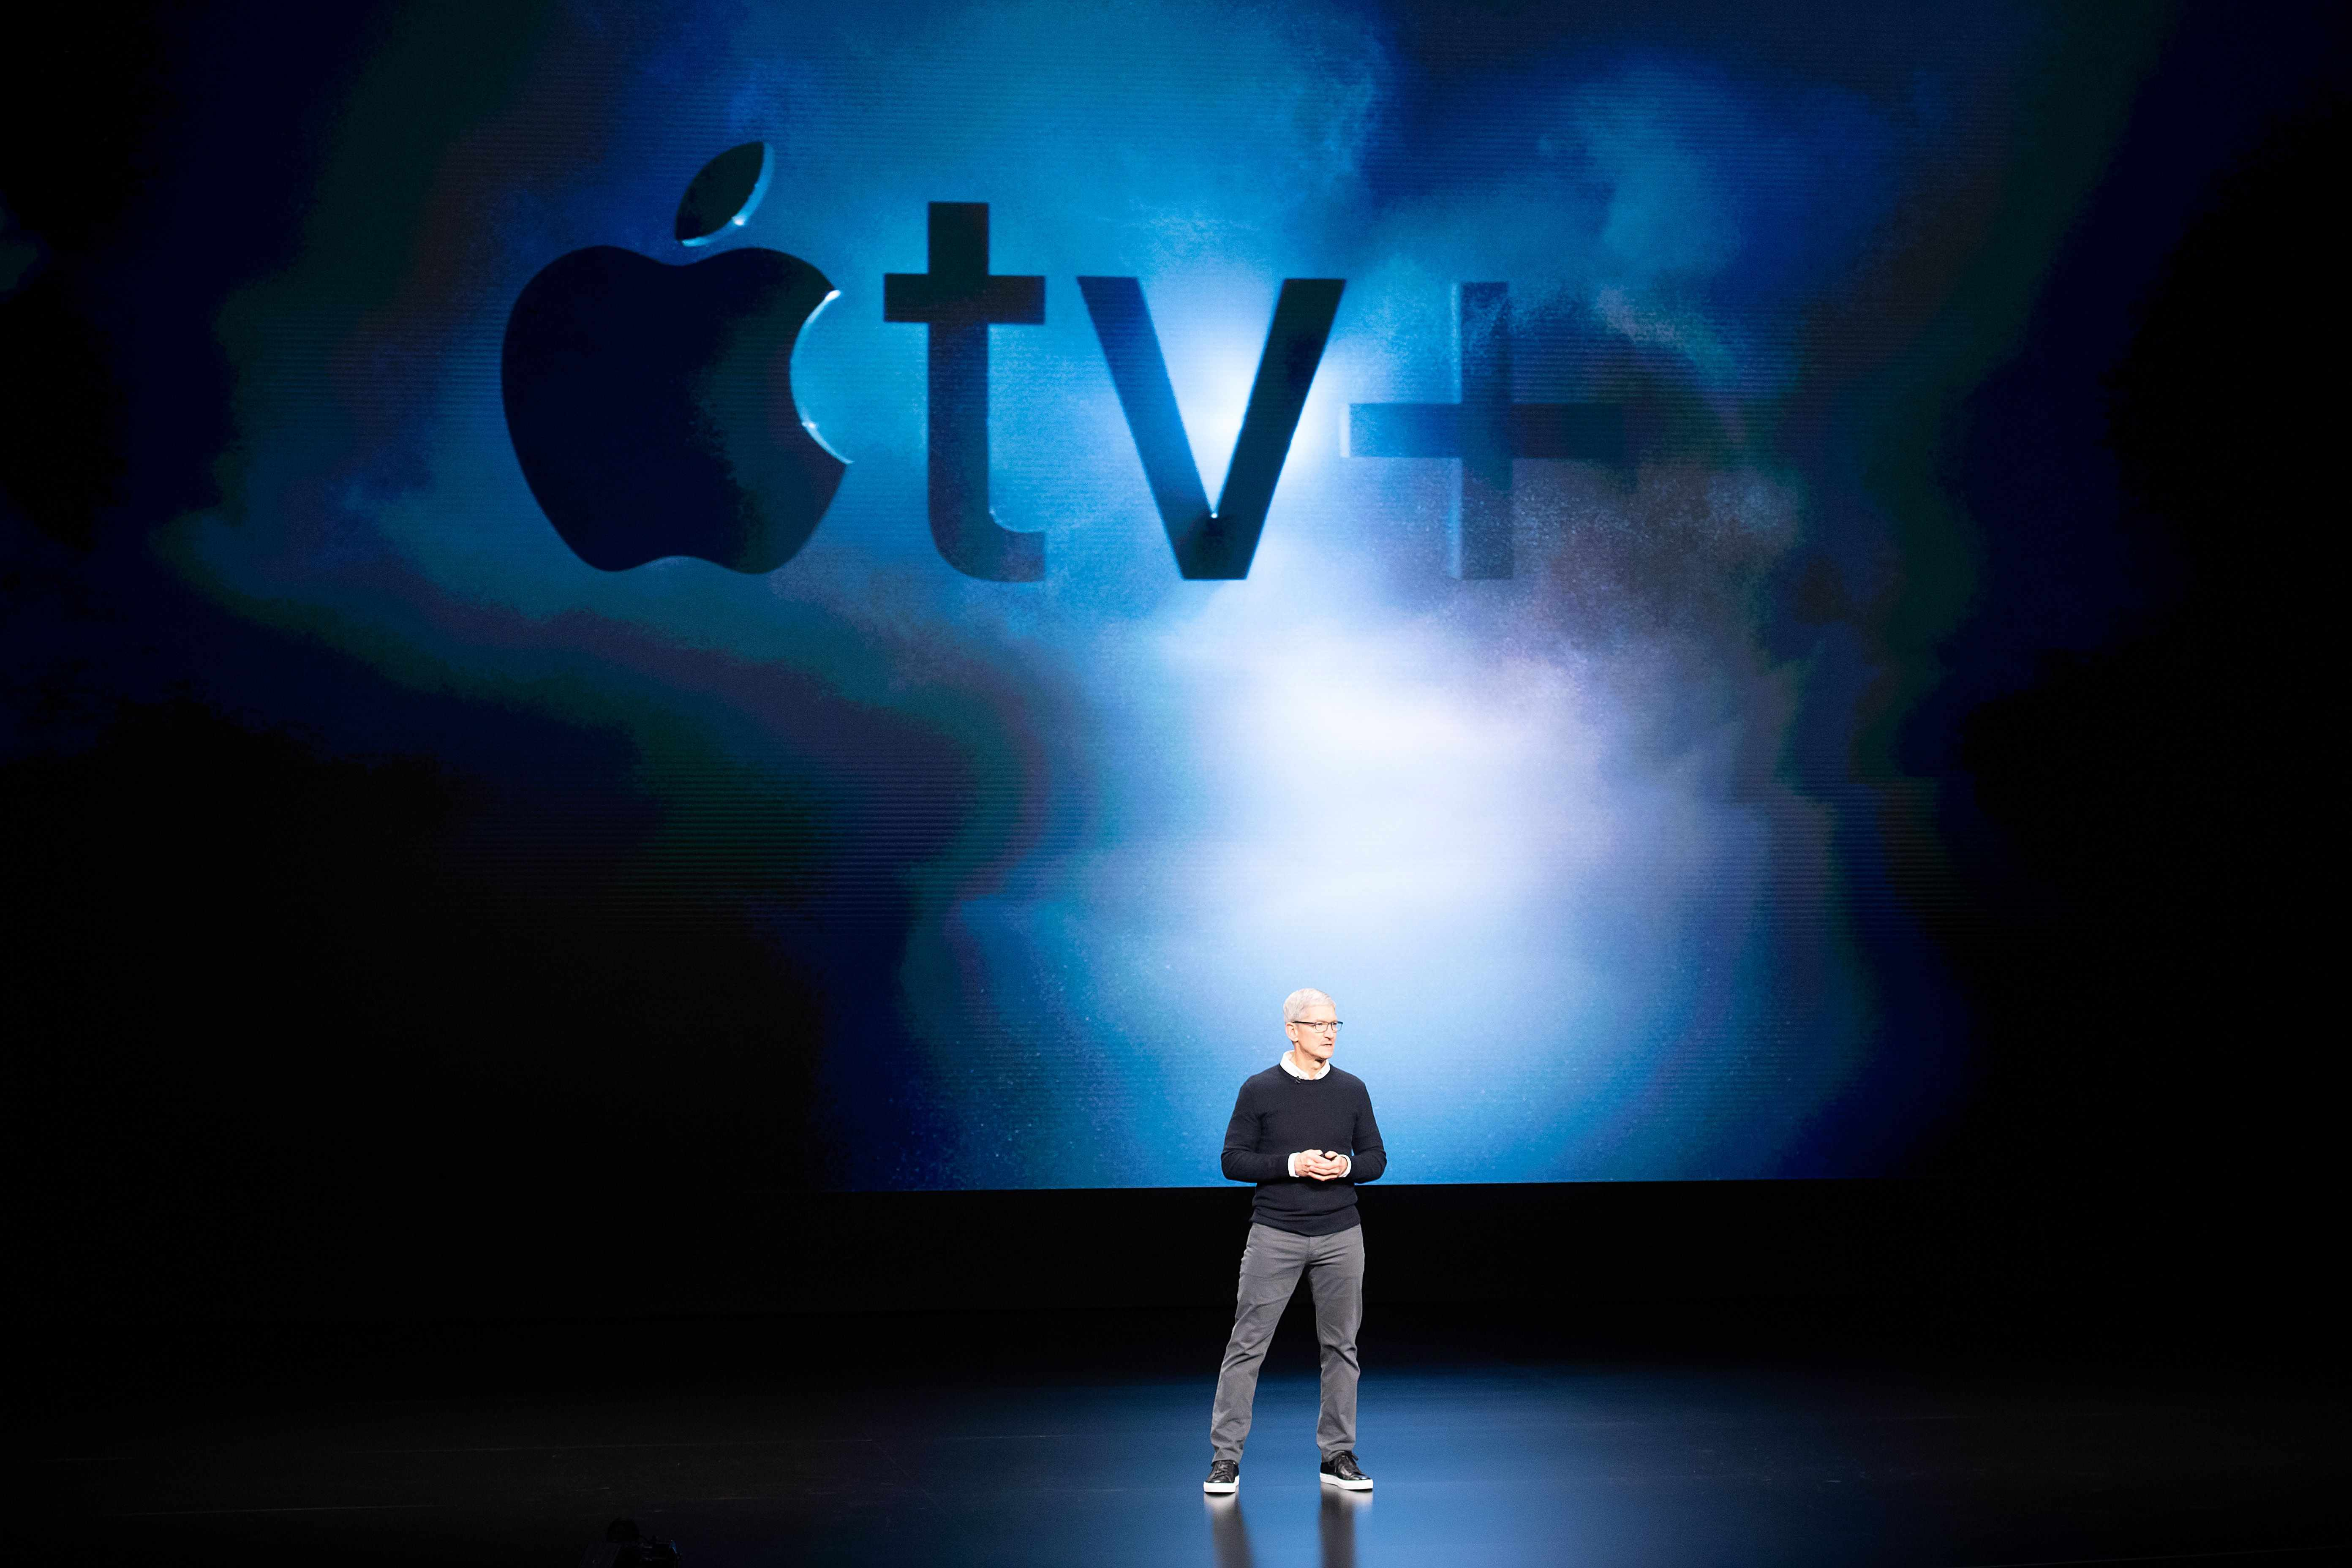 Apple CEO Tim Cook introduces Apple tv+ during a launch event at Apple headquarters on March 25, 2019, in Cupertino, California (Getty)